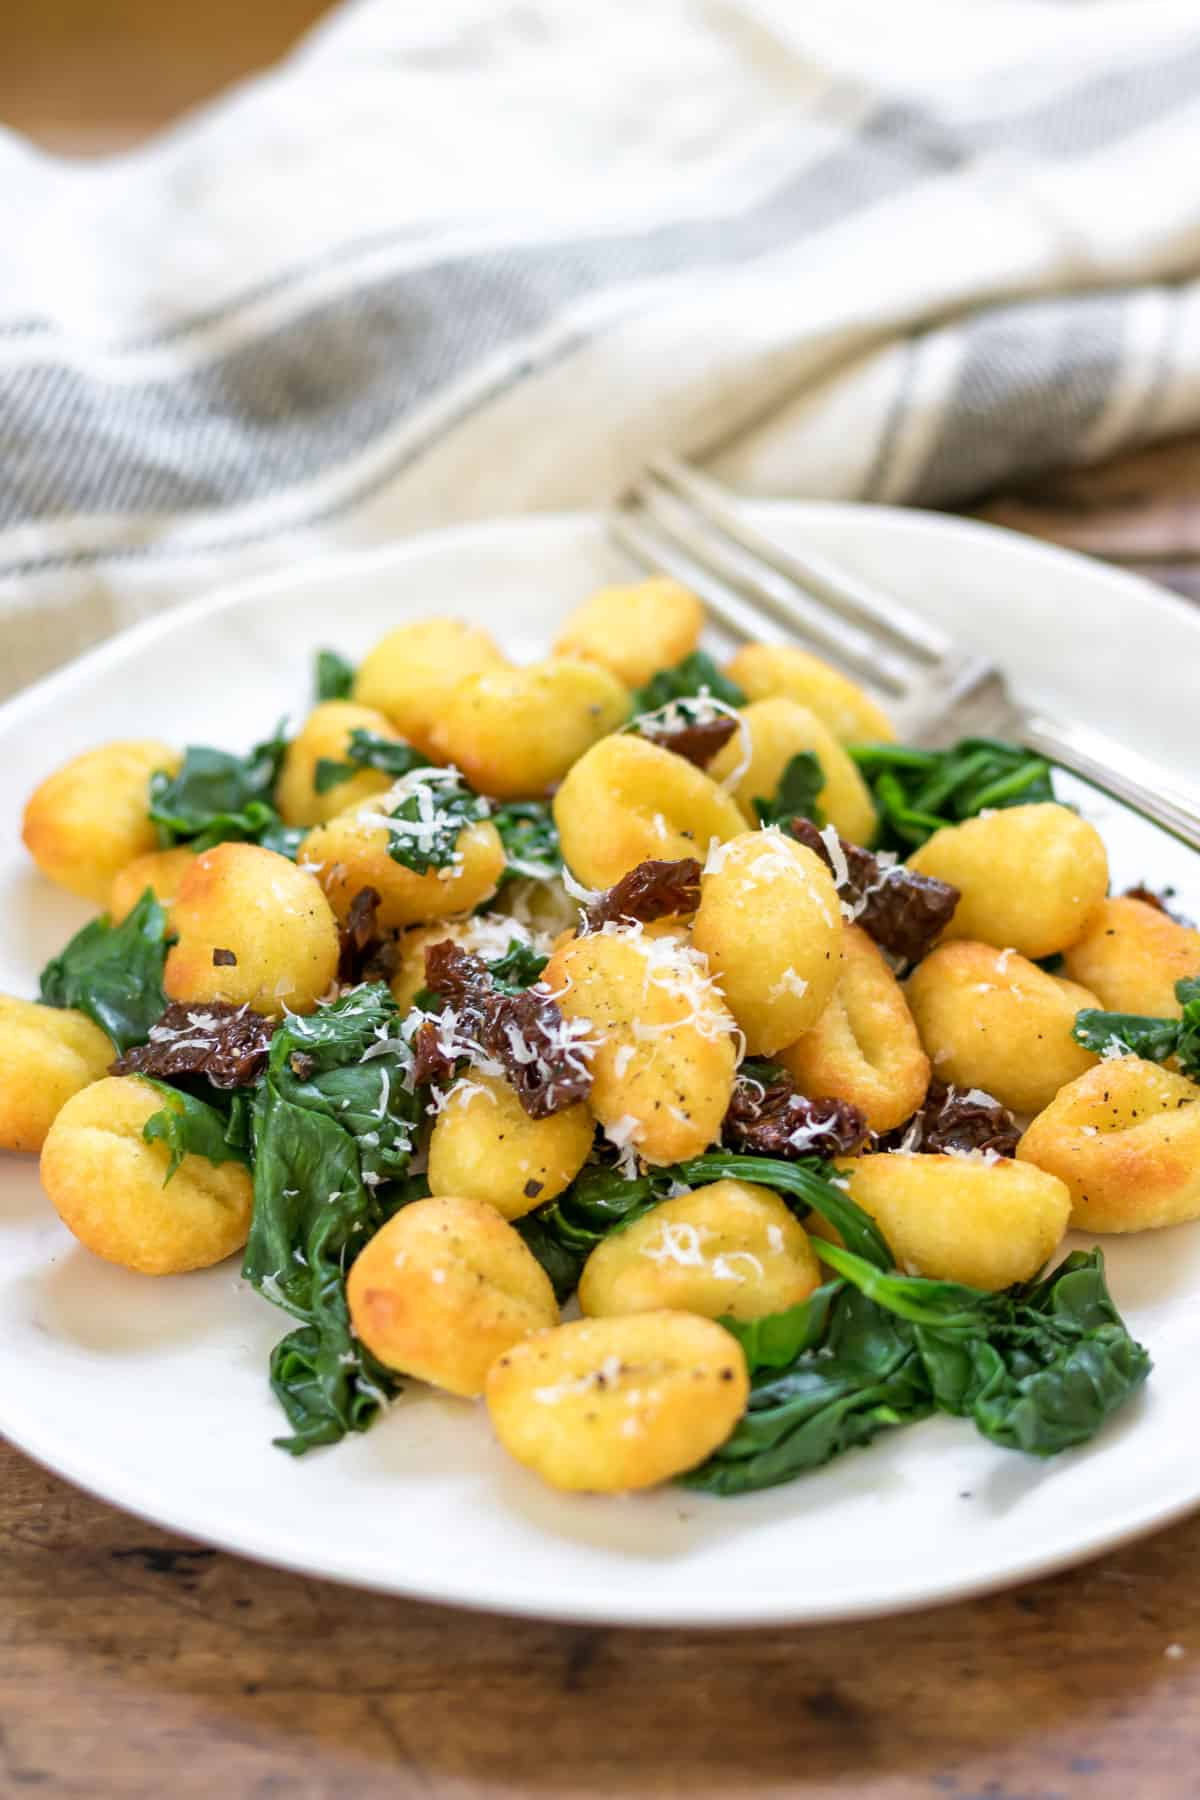 Plate of gnocchi with spinach, parmesan and sun dried tomatoes.